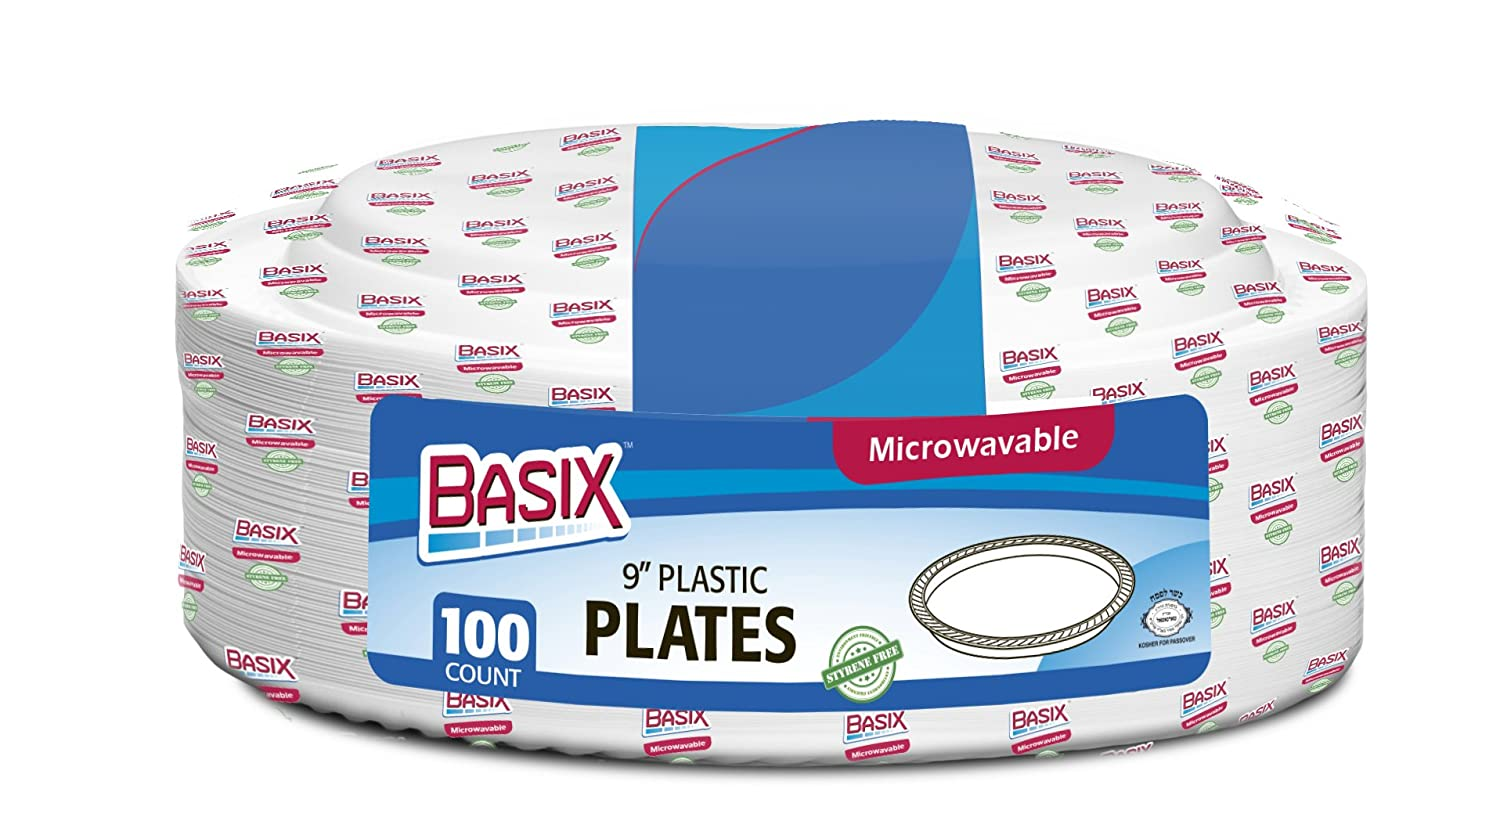 Amazon.com Basix 9 inch Plastic Plates Microwave Safe 100 Count White Kitchen \u0026 Dining  sc 1 st  Amazon.com & Amazon.com: Basix 9 inch Plastic Plates Microwave Safe 100 Count ...